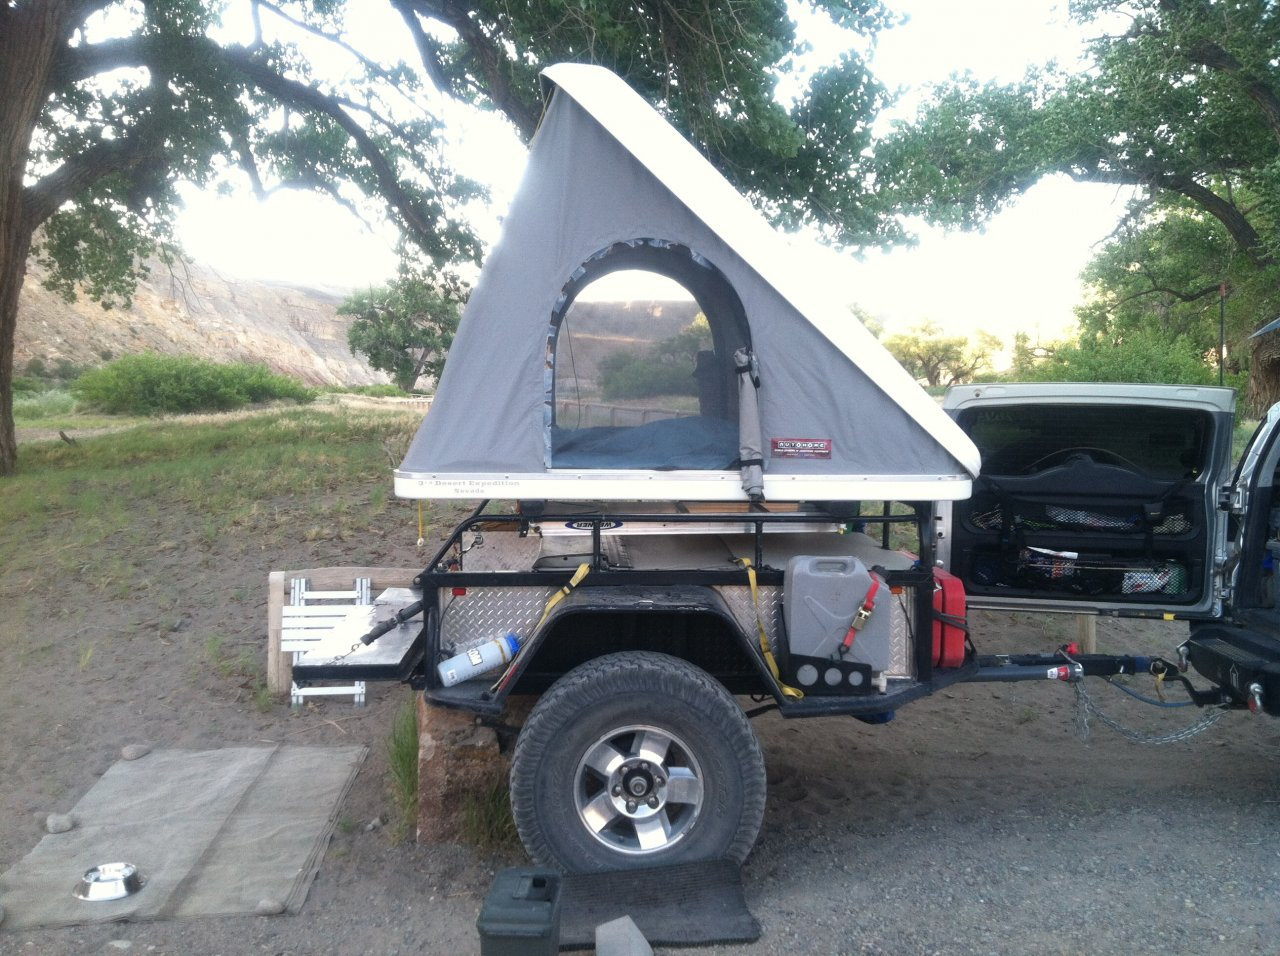 Wanted Hardshell Roof Top Tent & Wanted - Hardshell Roof Top Tent | IH8MUD Forum